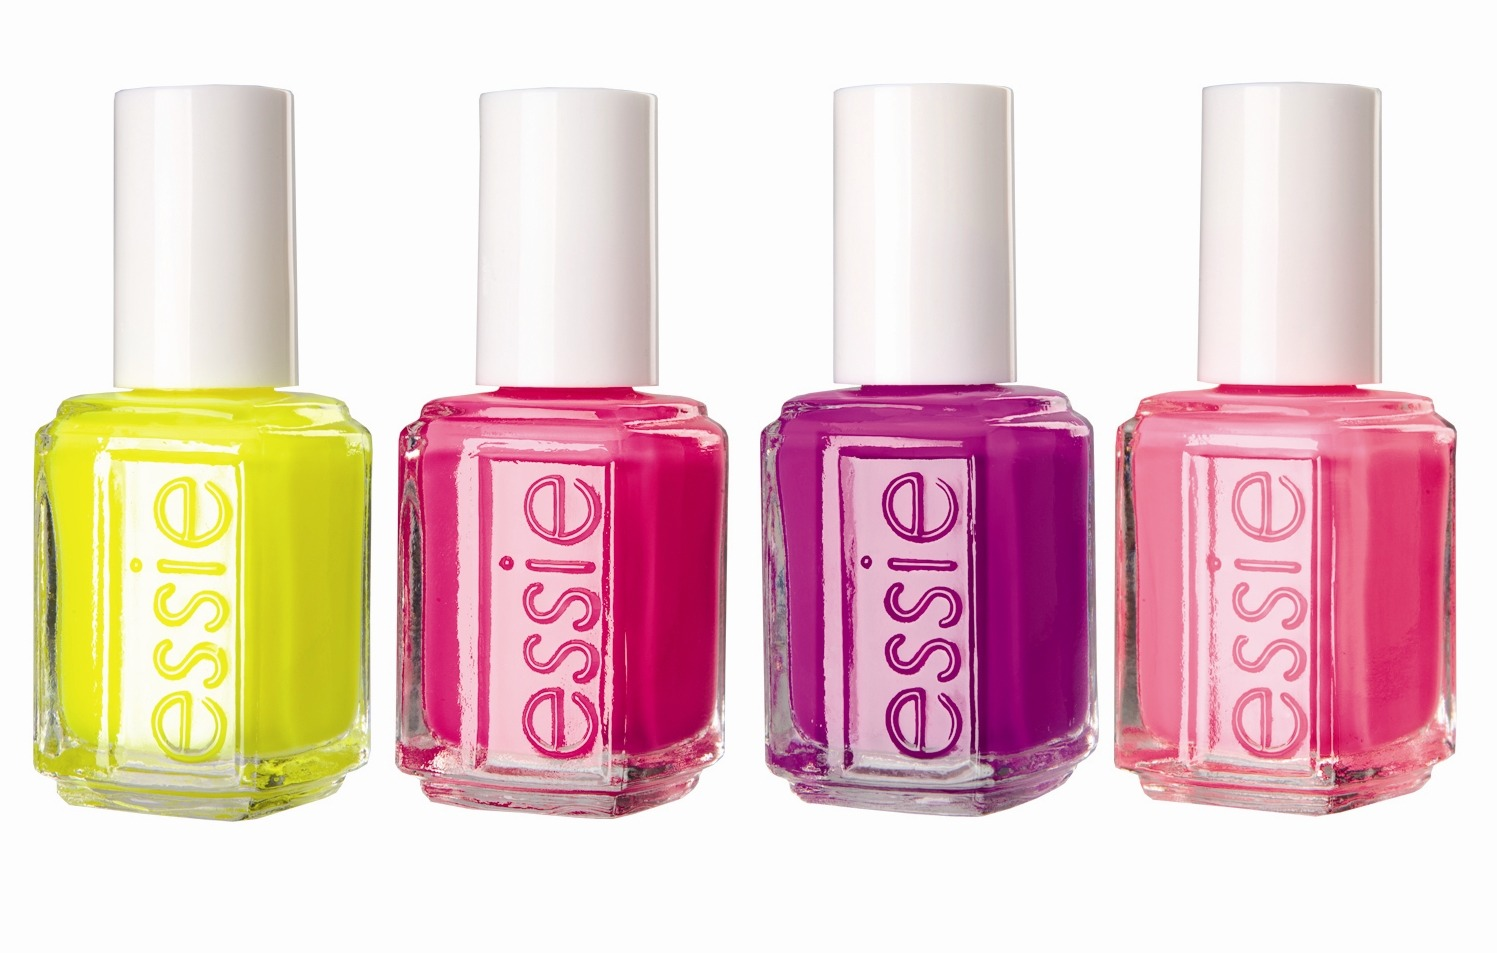 Finally, choose a nail polish! One of my favorite brands is Essie because they have a huge range of shades including neutrals + brights. Paint 2-3 coats onto your nails until you reach the desired opacity. For extra strength, apply another layer of nail hardener. BOOM. A perfect mani every time!